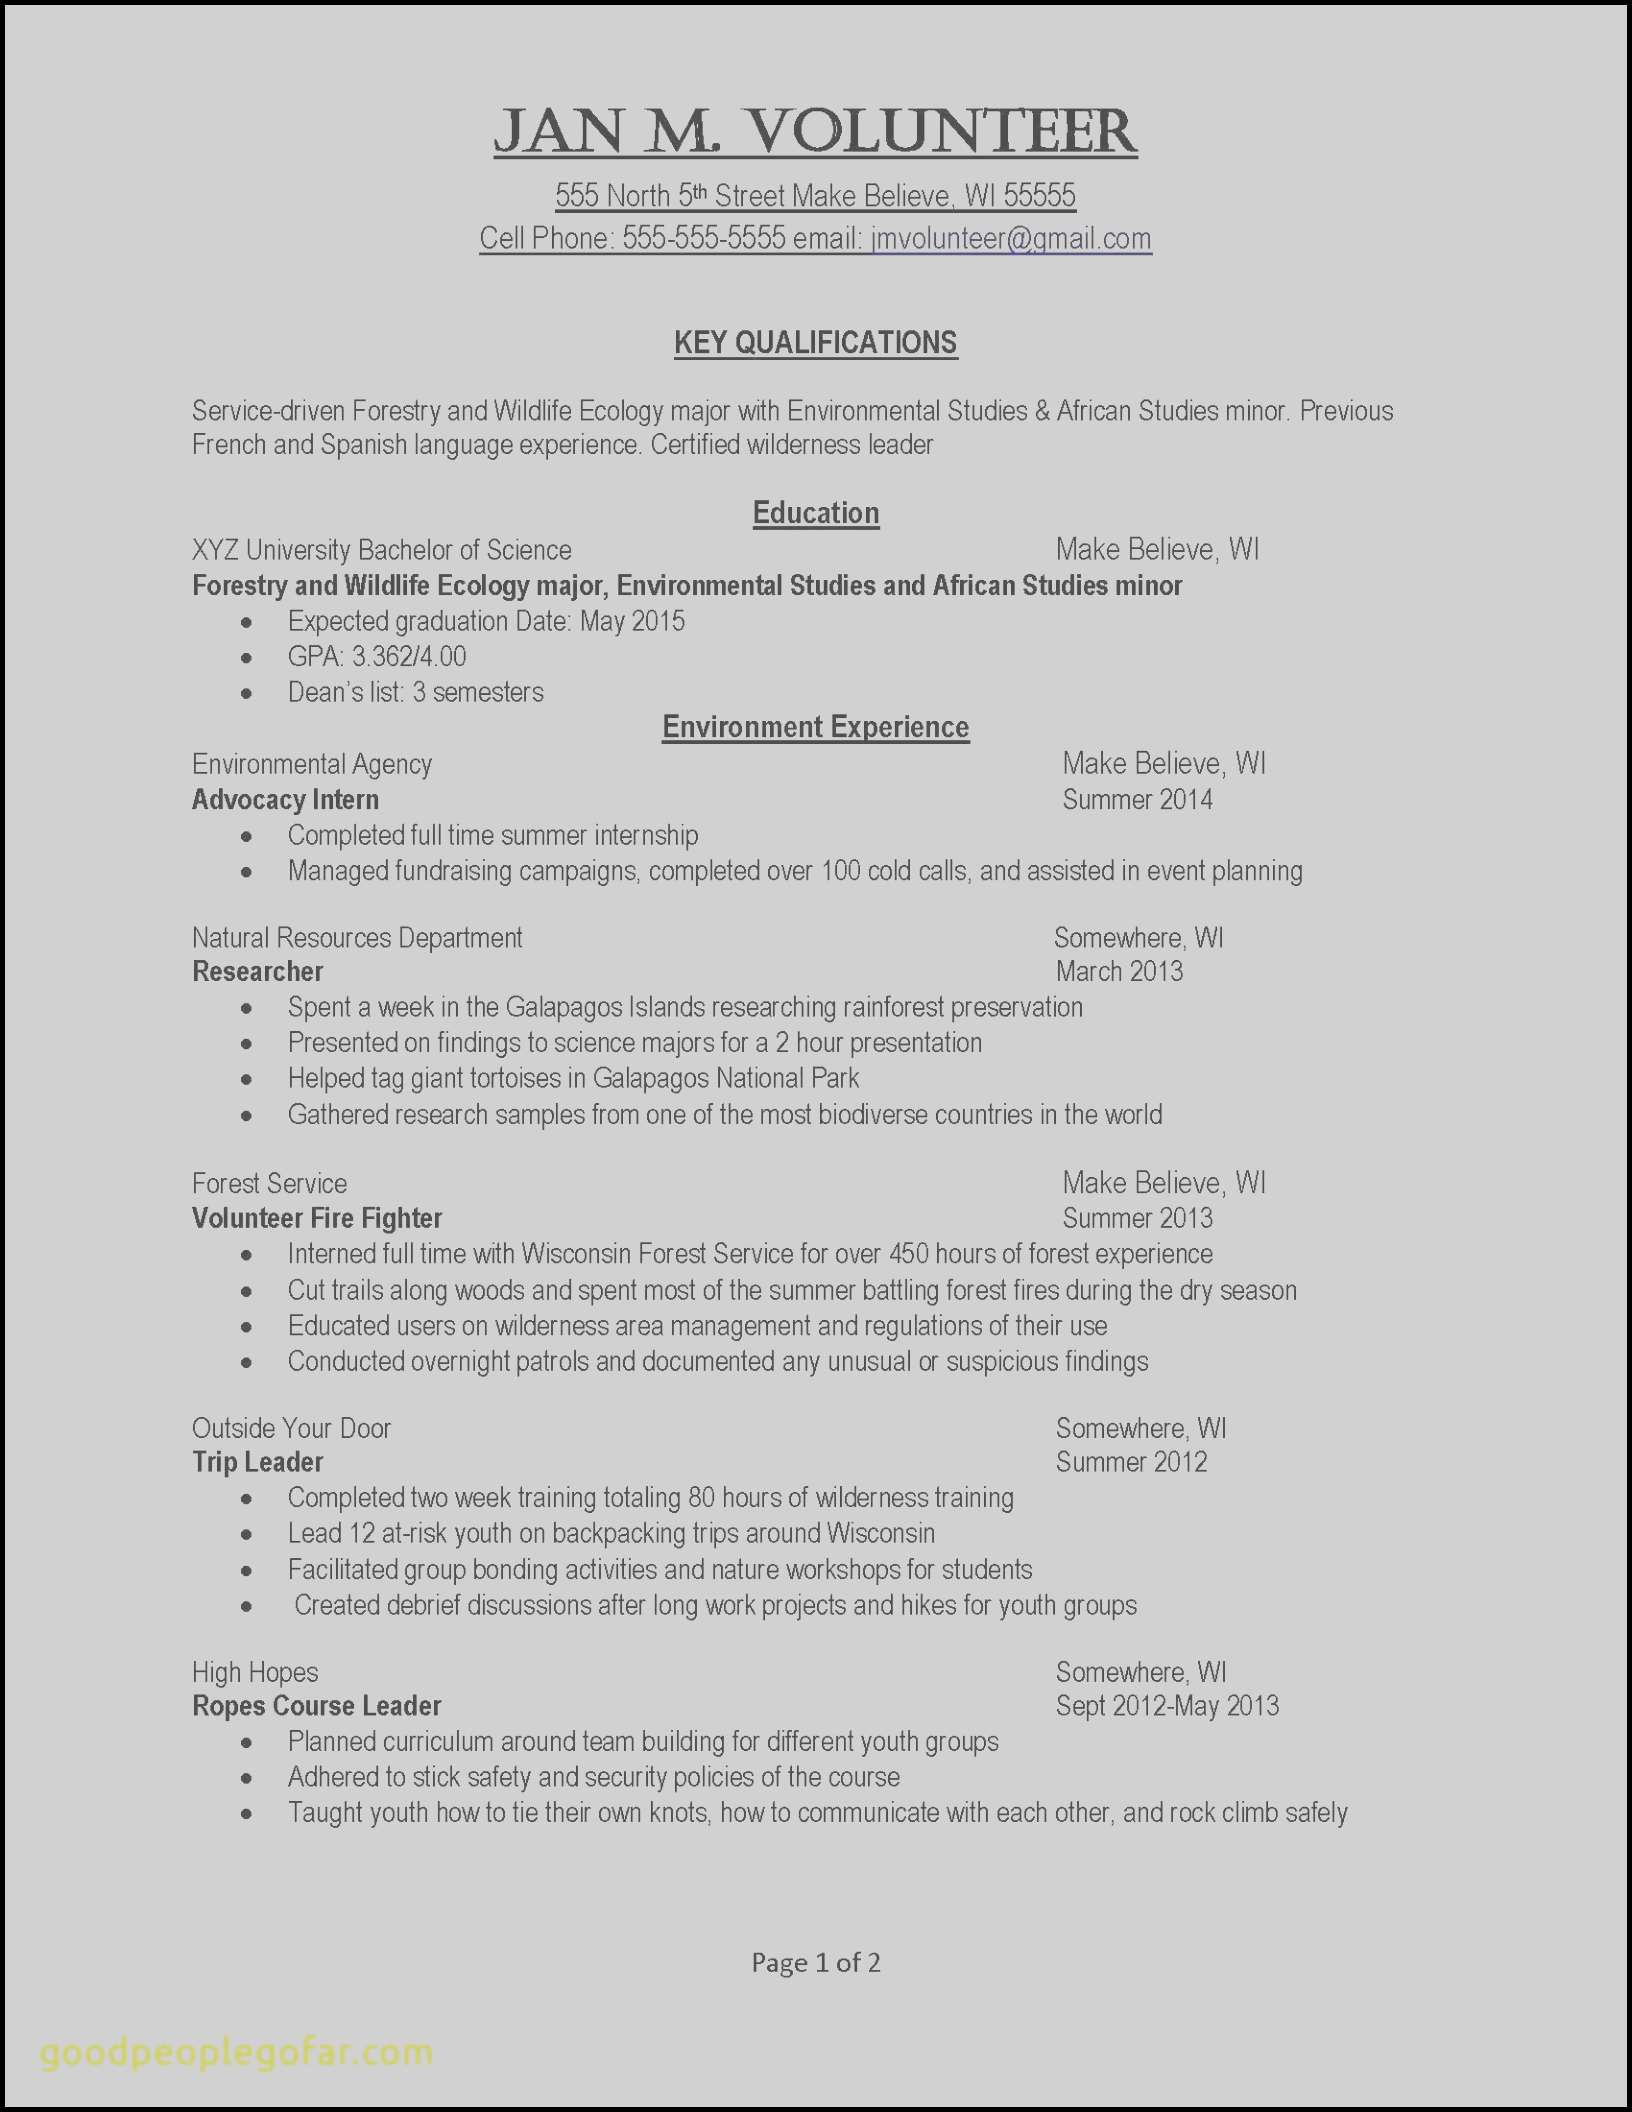 Firefighter Job Description Resume - Resume Examples for Warehouse Position Recent Example Job Resume